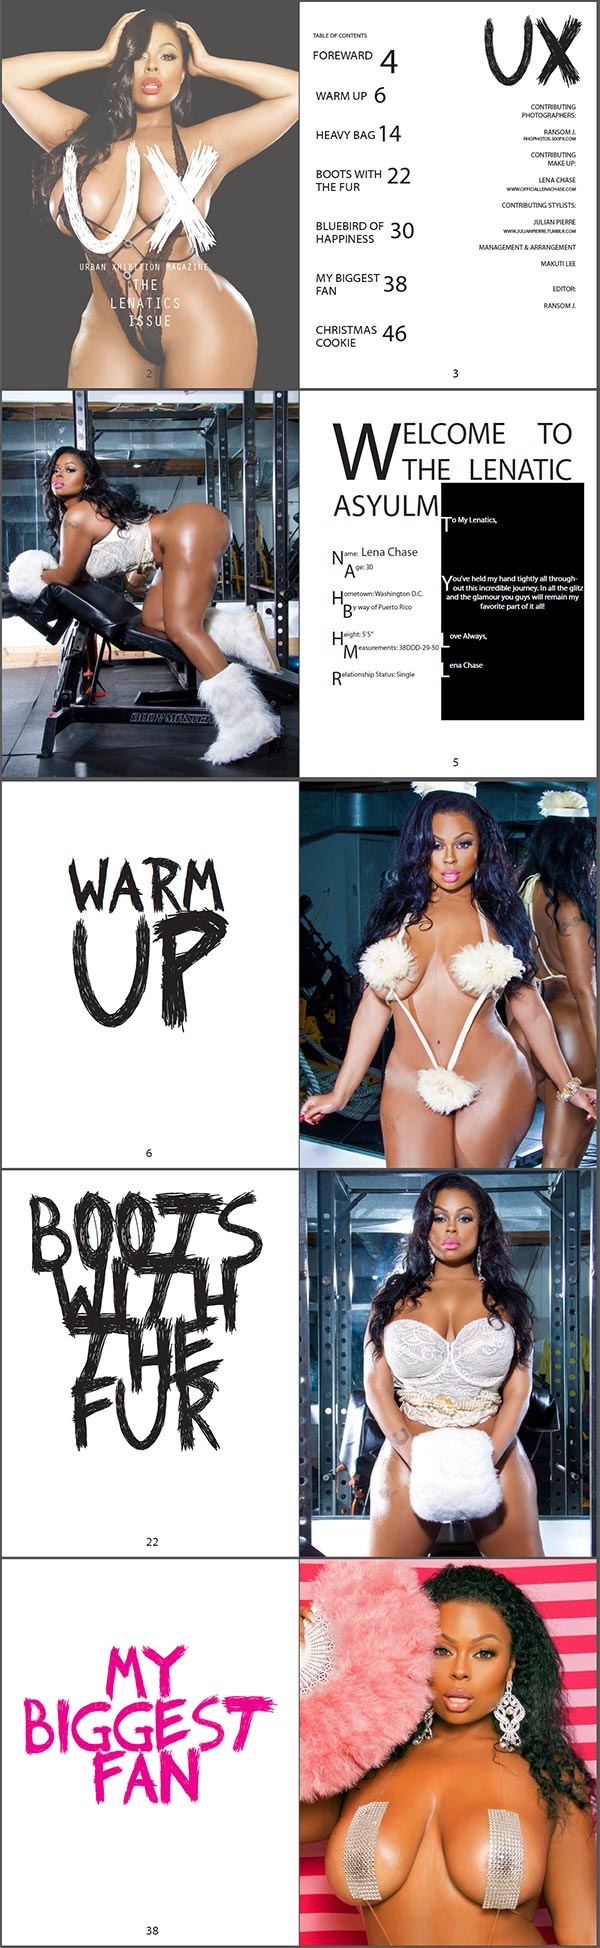 Lena Chase @lena_chase in UX Magazine : The Lenatics Issue - Rho Photos